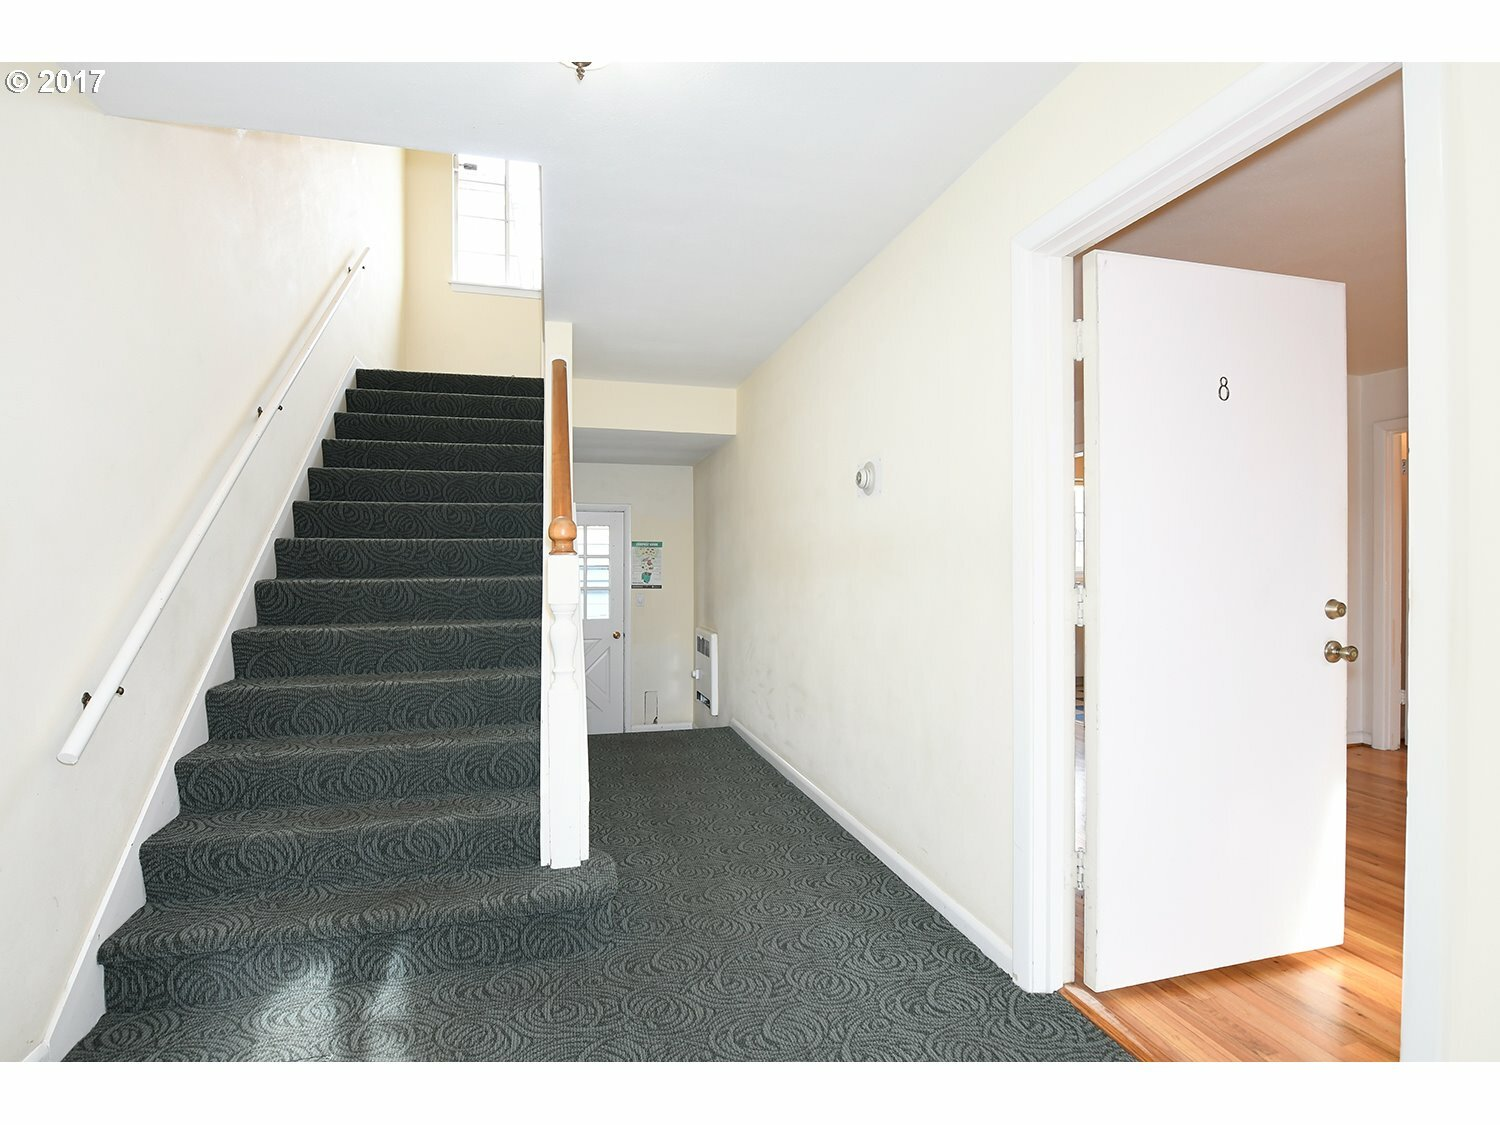 2173 Nw Irving St 8, Portland, OR - USA (photo 2)